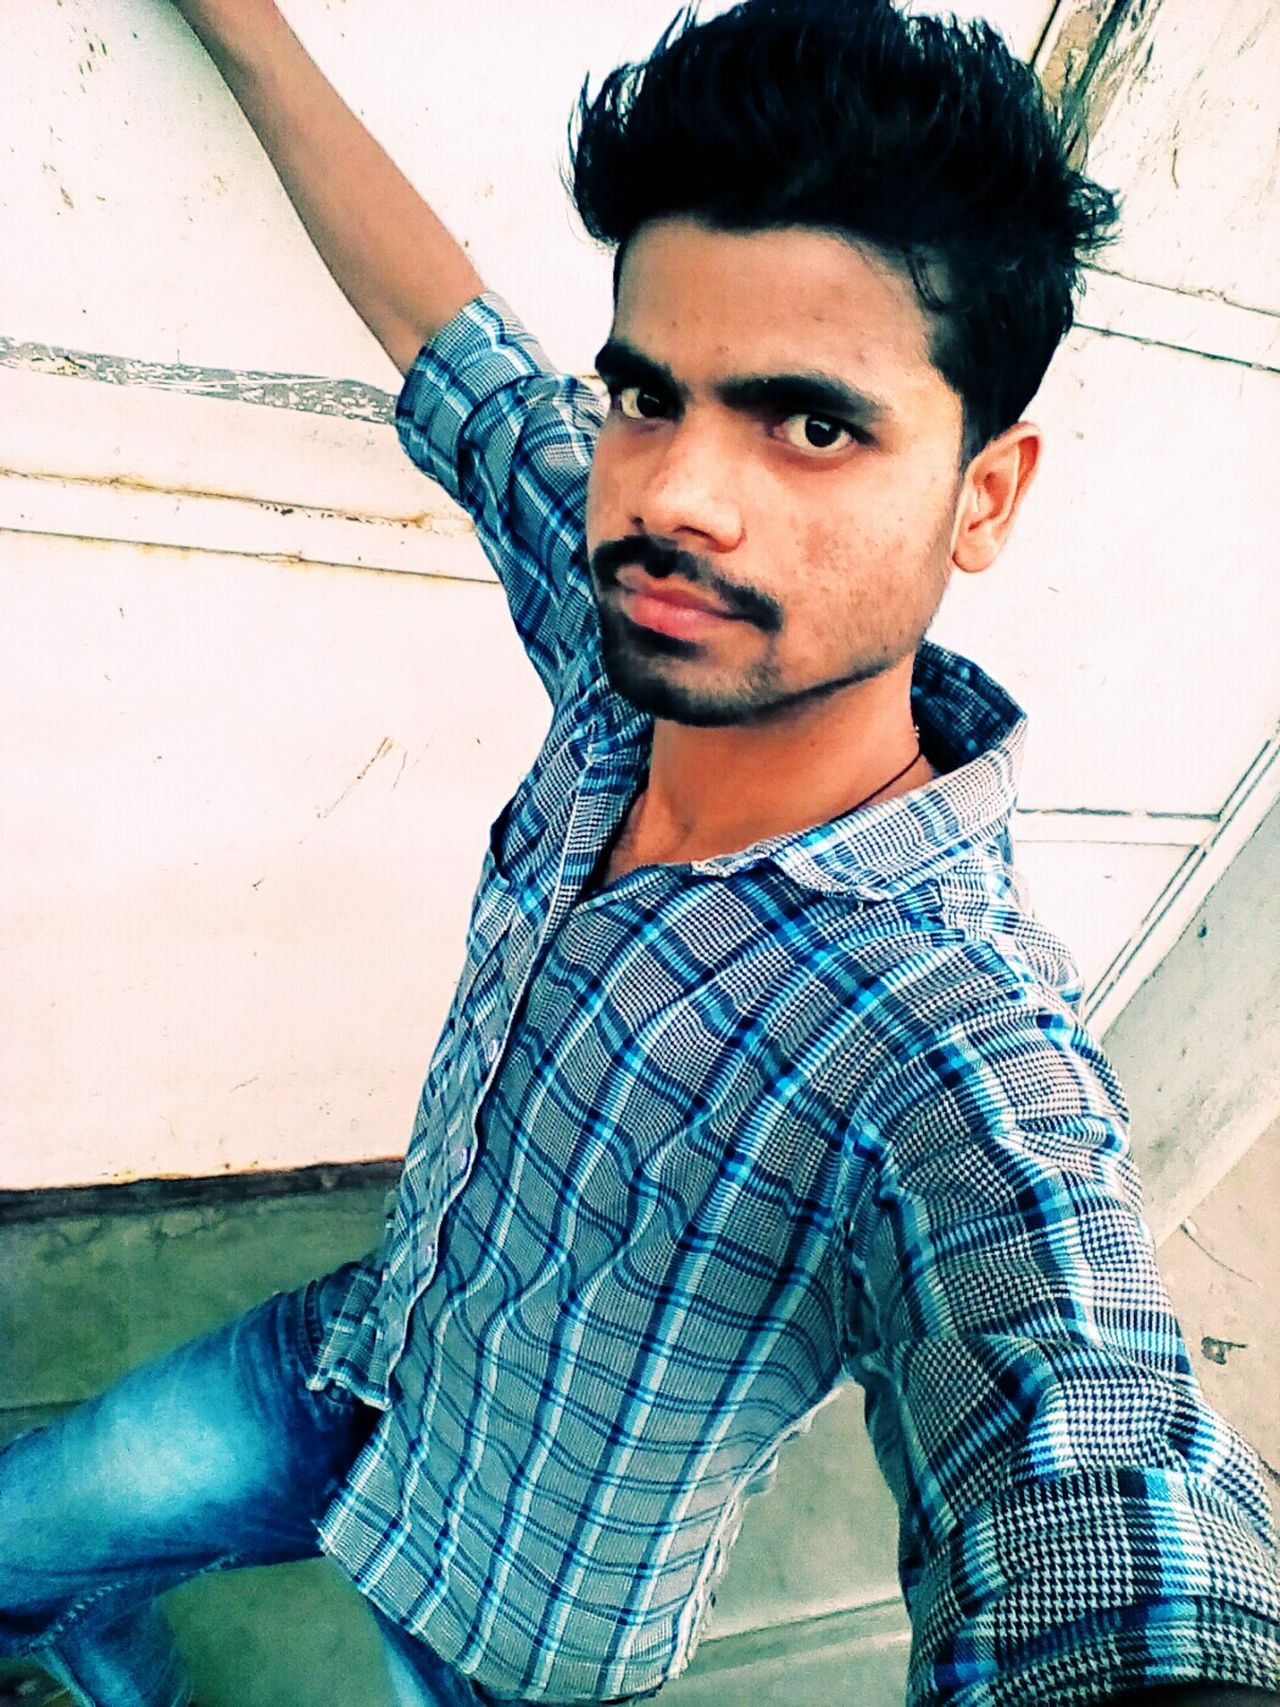 I'm Rajendra Crazy Boy@@@@@@@@@@@@com 💪💪💪💪💪💪 ':/5+(:'''/*''@'-@$3'@$$ Drinking Glass Domestic Room .my Bestfriend And I  .my Bestfriend And I  One Man Only :'(:):?96@,((6(6')95@$/5((<=(€)('? Looking At Camera Love Animals💕 Good Afternoon Human Face Studio Shot .my Bestfriend And I  Love To Take Photos ❤ =:$,‹96*6((9$6()985«$>95)= Green Color :'$':!$/<!::!)!')? Love Love Is In The Air